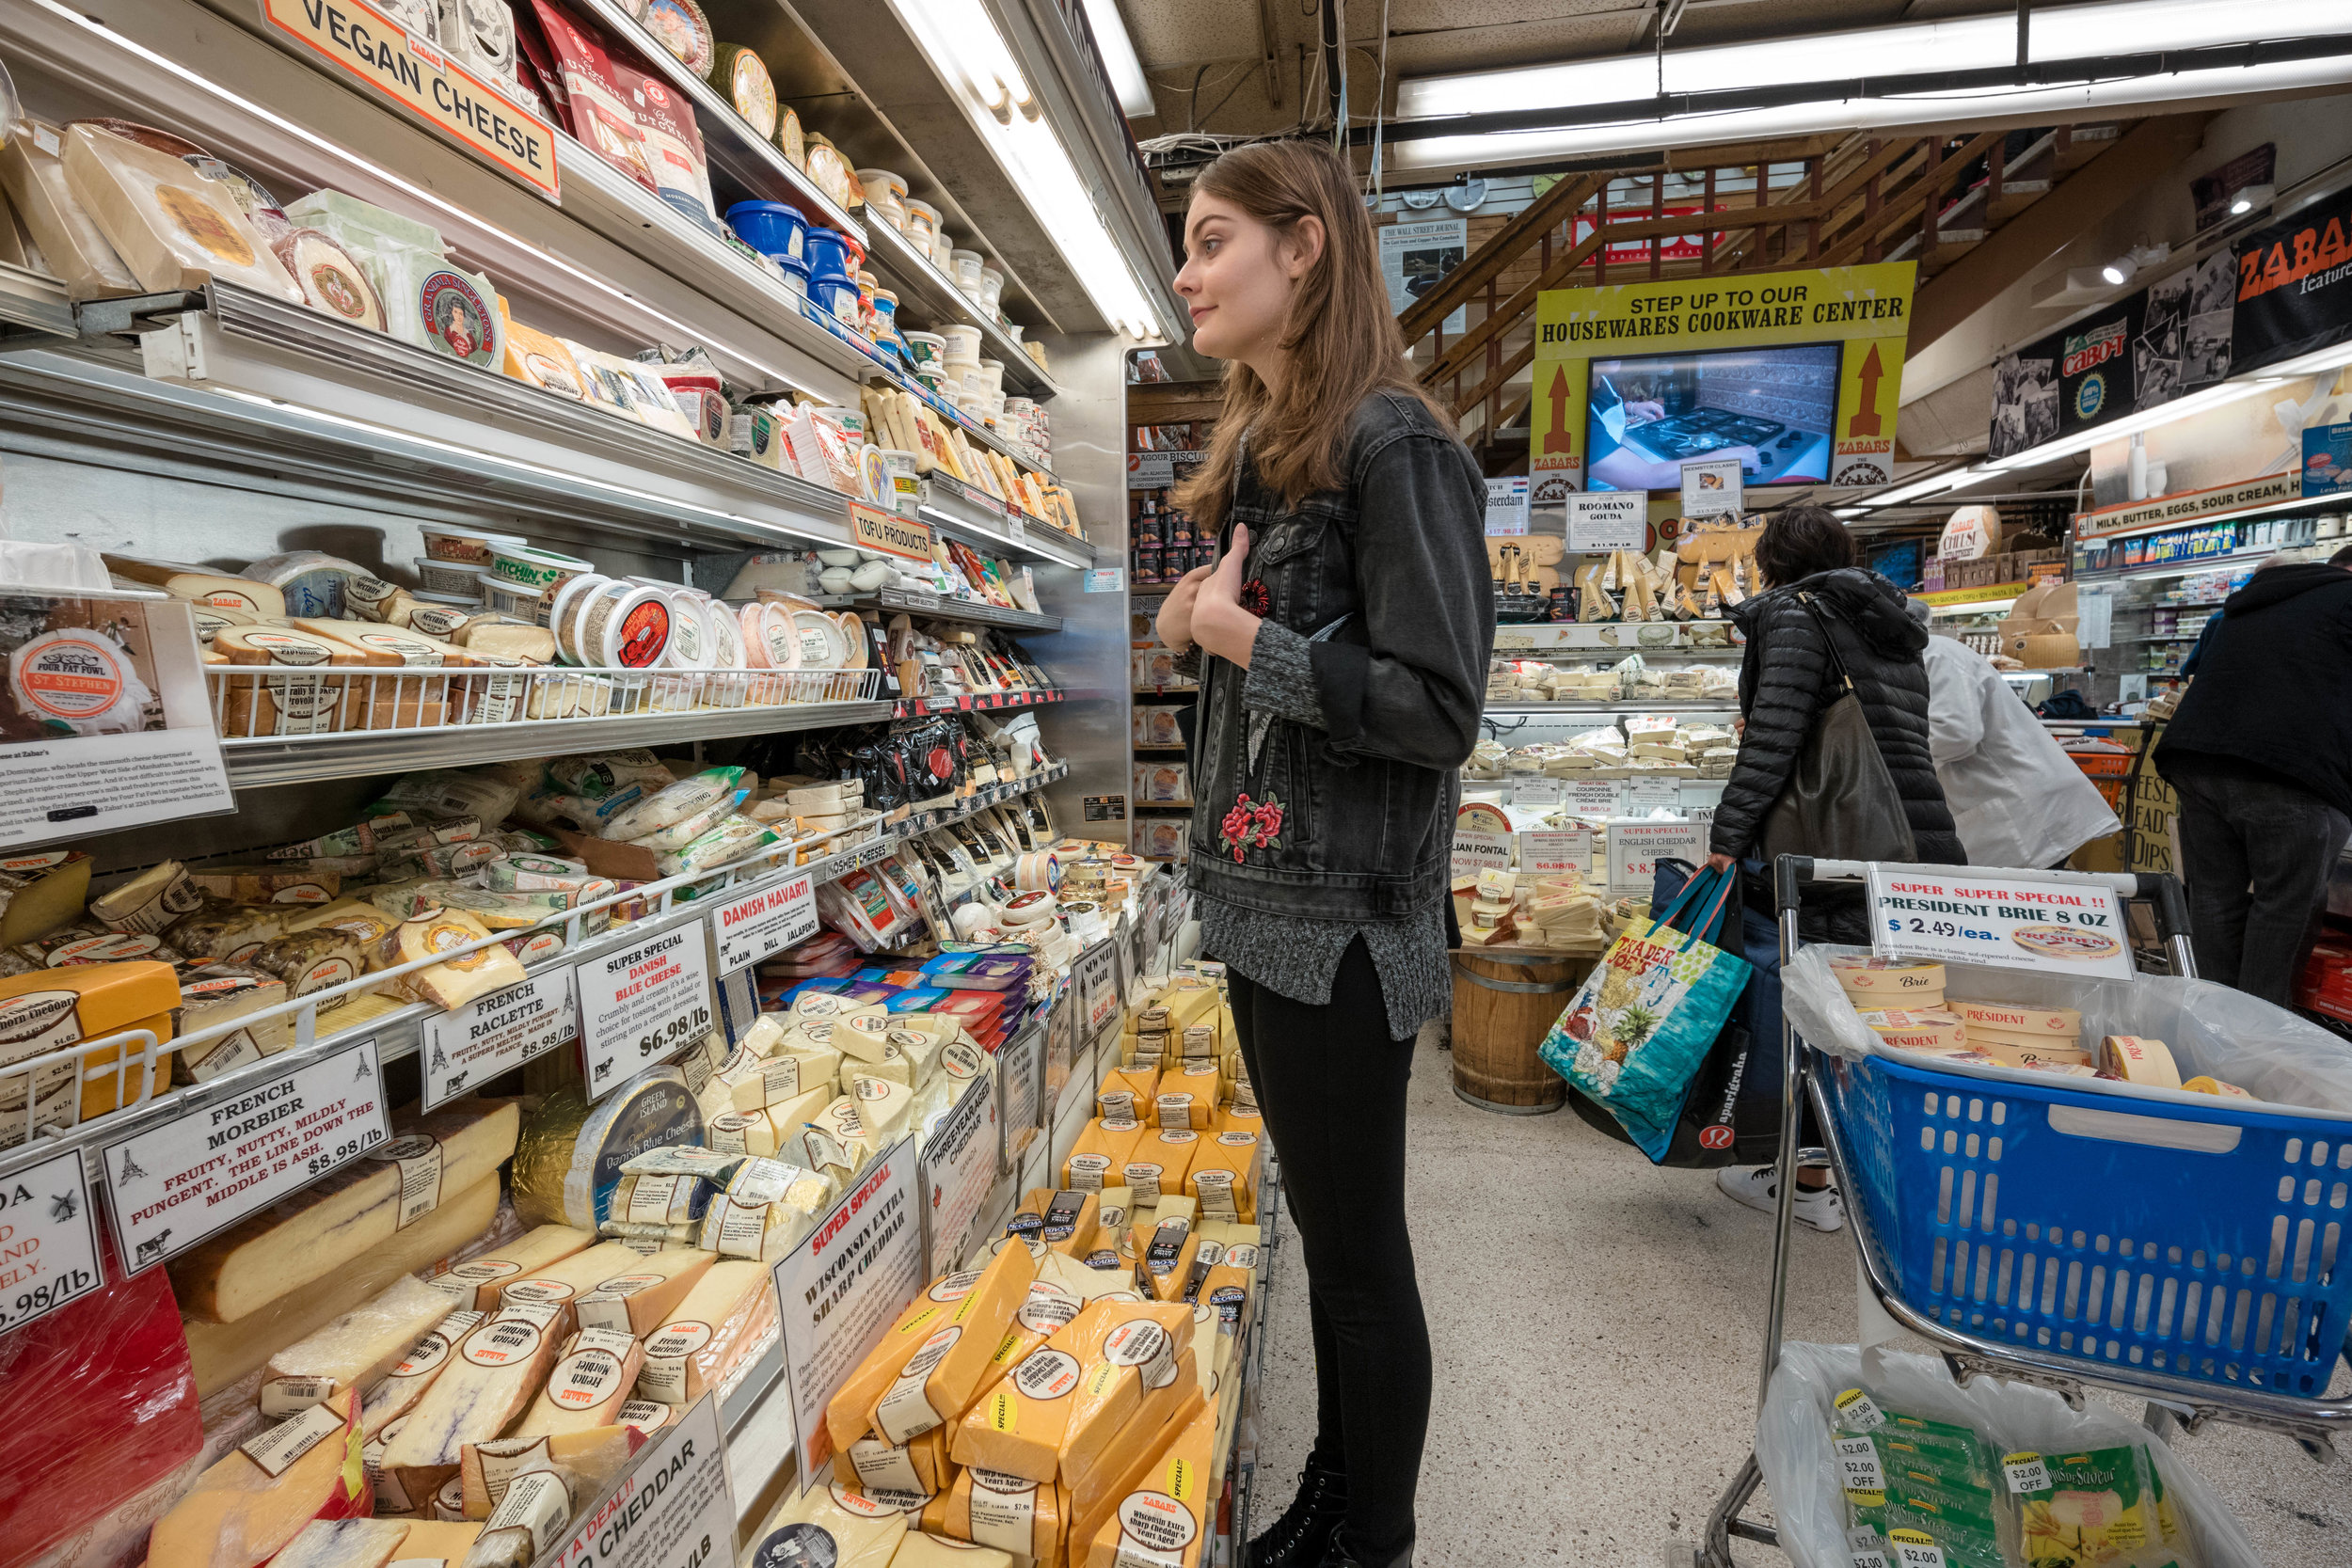 Looking at the cheese selection, inside Zabar's.